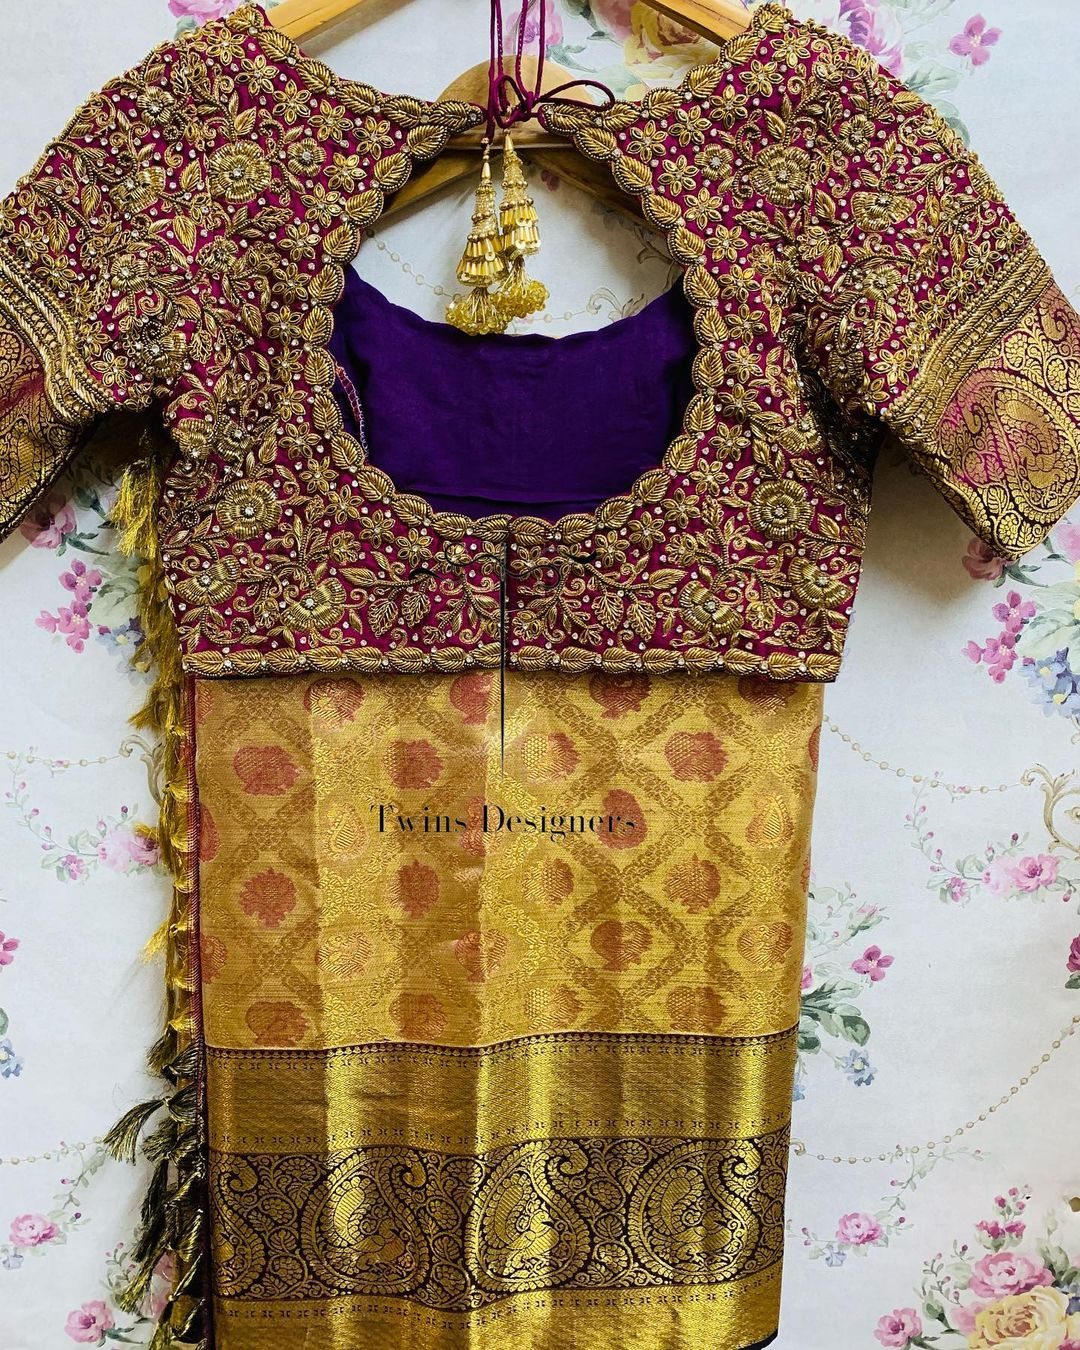 Customised maggamwork blouse. Stunning purple color bridal blouse design with gold thread maggam work. 2021-06-10